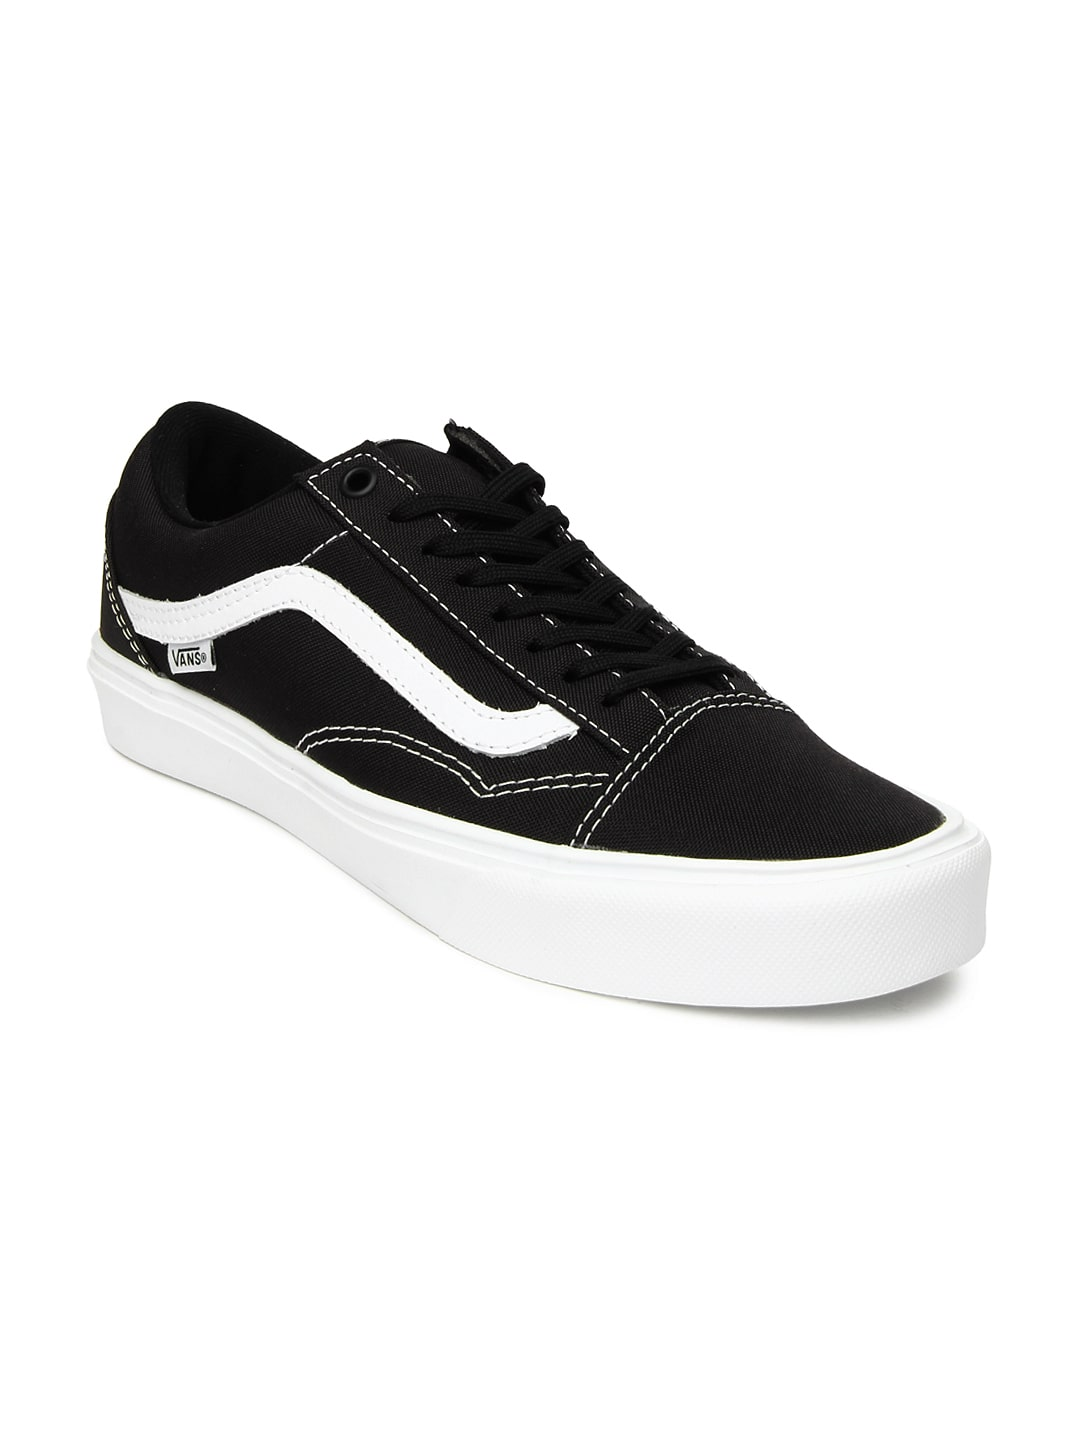 8c7c6c67b2390d Vans vn-0xer6bt - Best Price in India